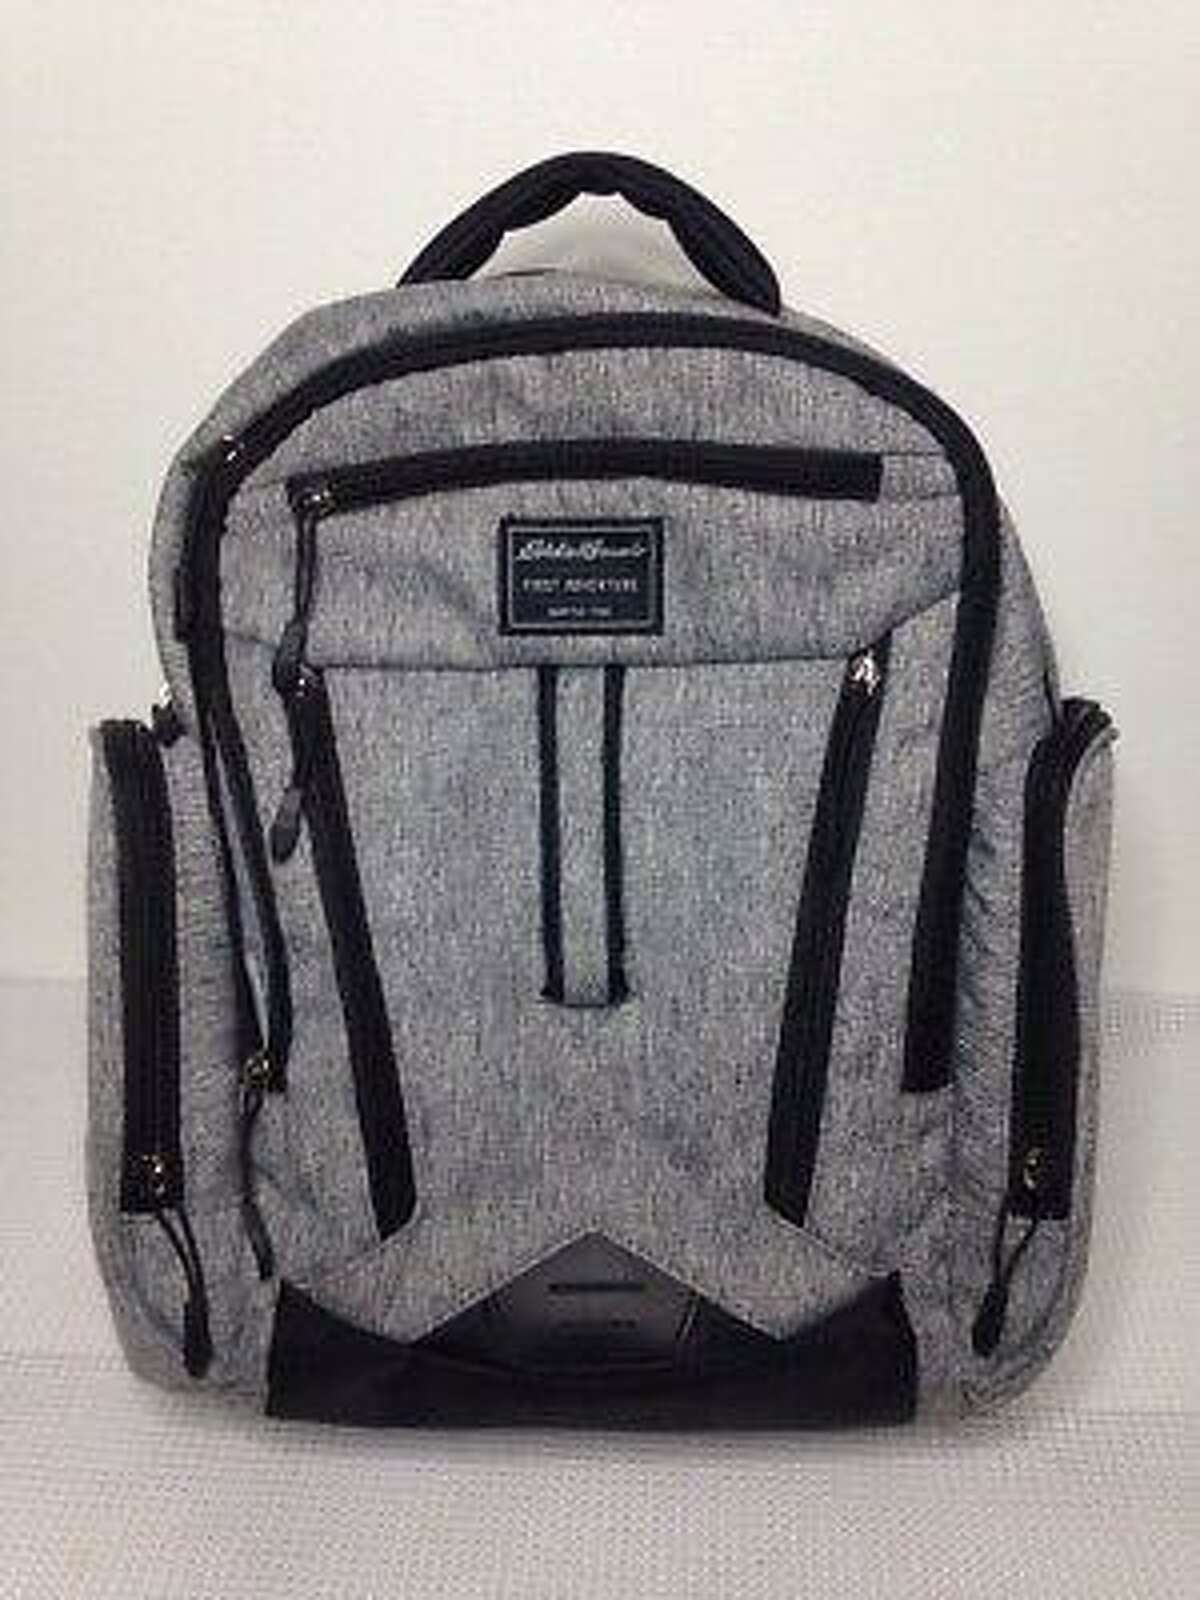 A photo of the type of gray, Eddie Bauer First Adventure backpack/diaper bag that Ansonia police believe may be with Vanessa Morales or discarded in the area.